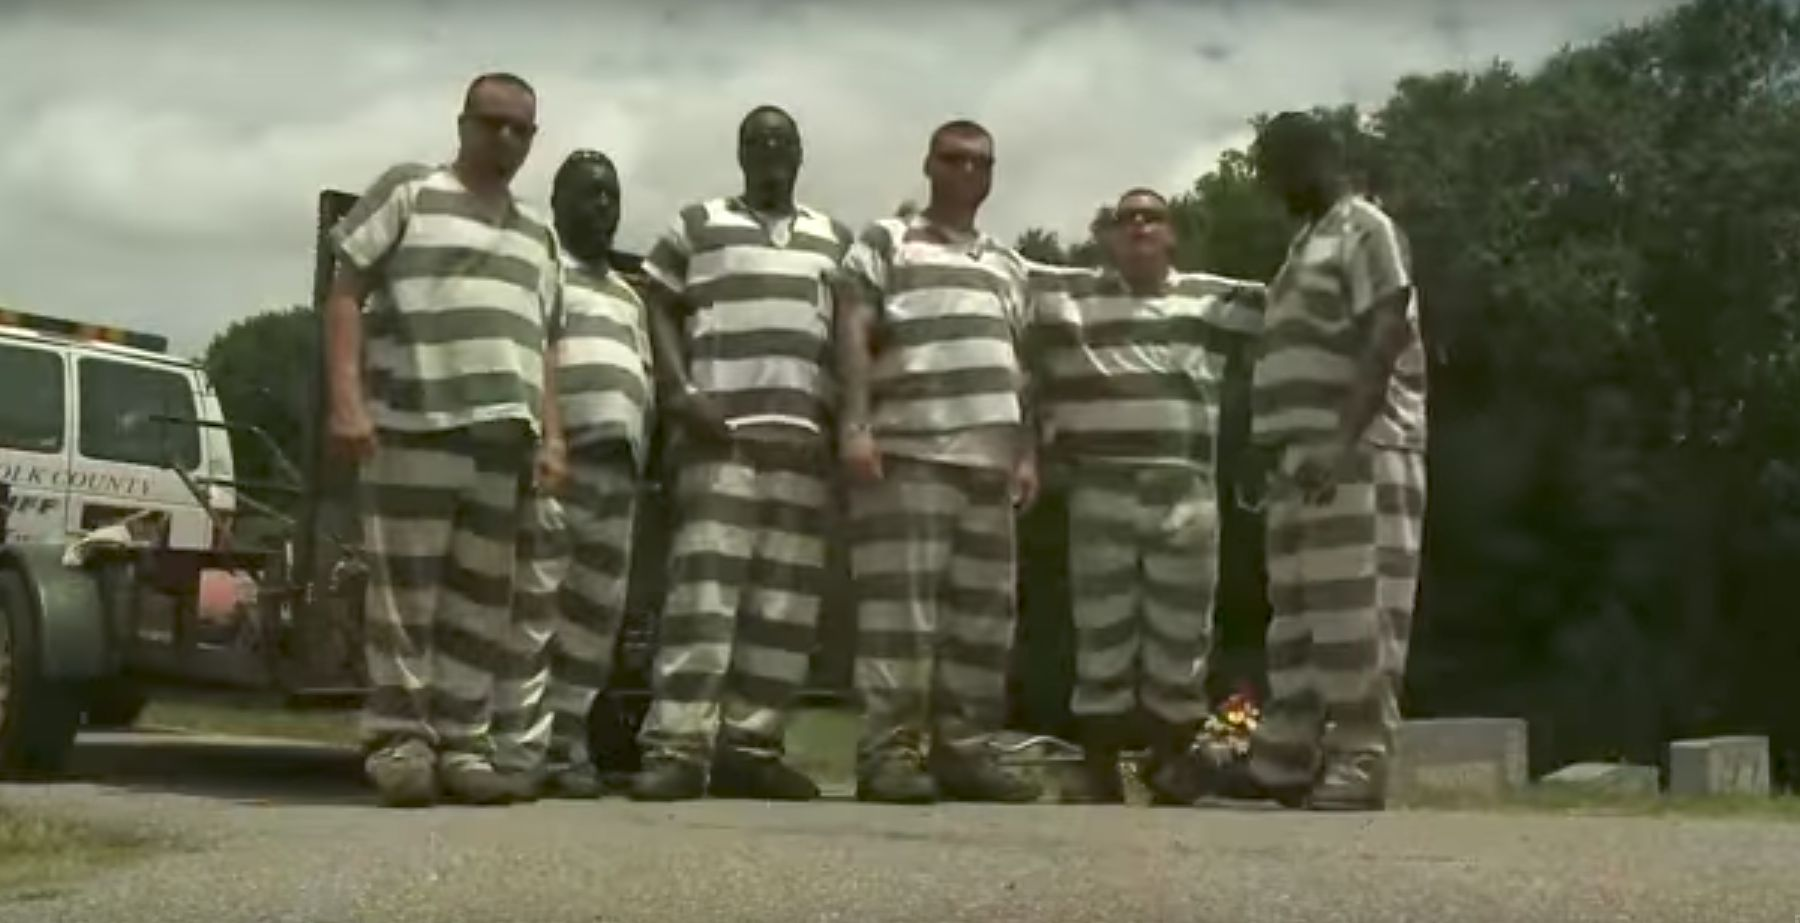 These Inmates Could Have Fled When Their Guard Collapsed. They Saved His Life